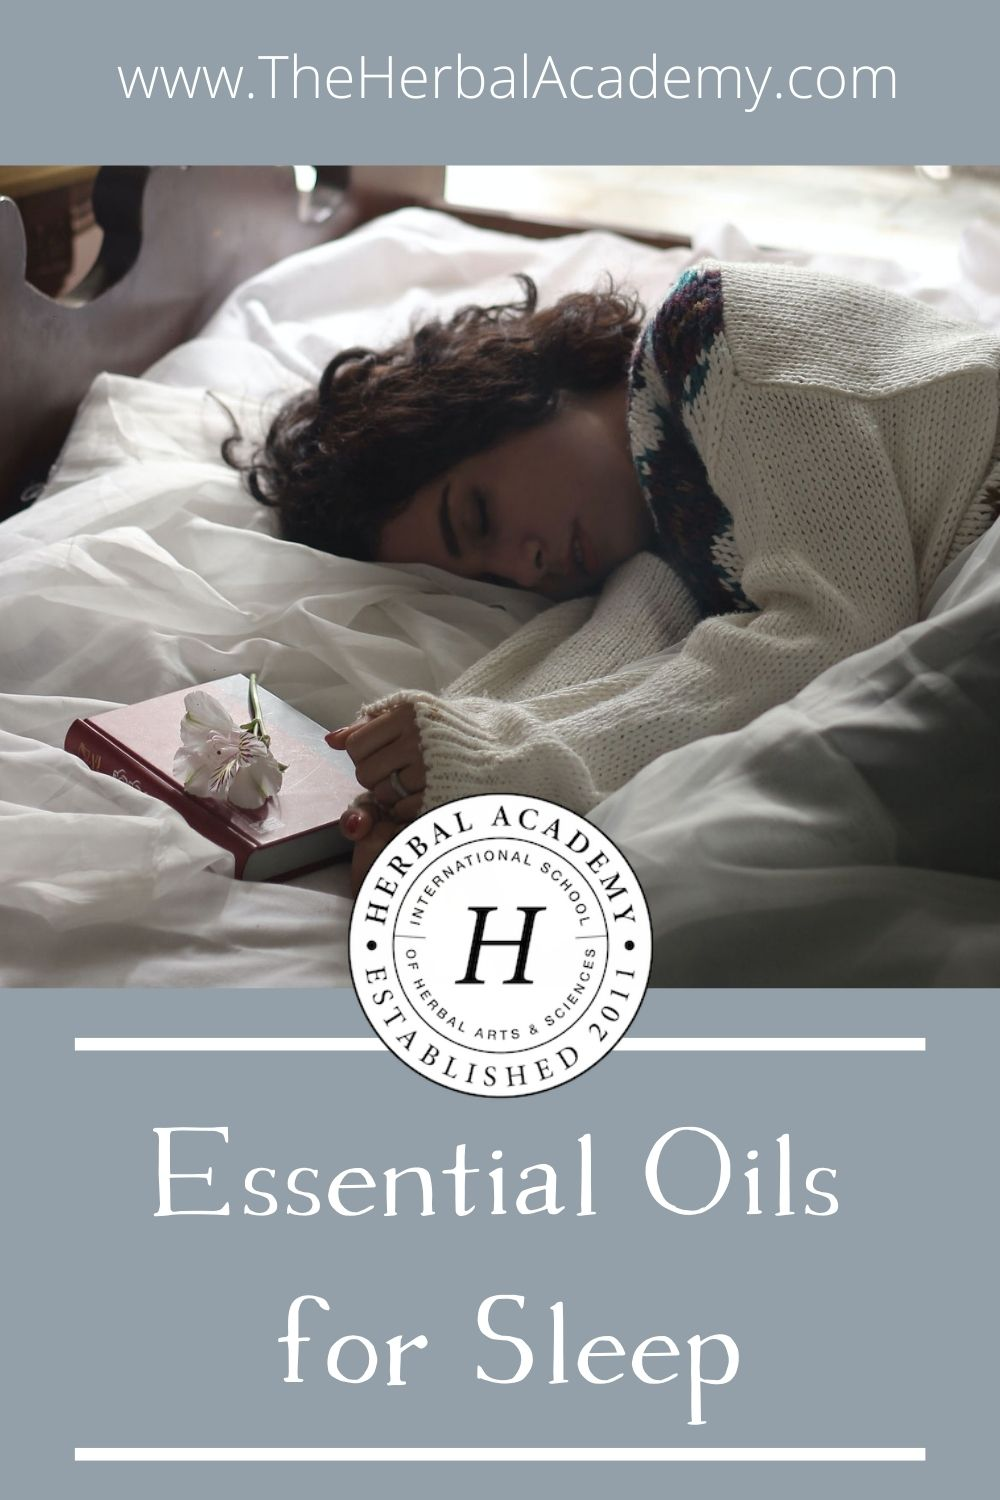 Essential Oils for Sleep: Aromatherapy and Insomnia | Herbal Academy | Find tips for using essential oils for sleep support, plus a summary of the most recent scientific findings on aromatherapy and insomnia.